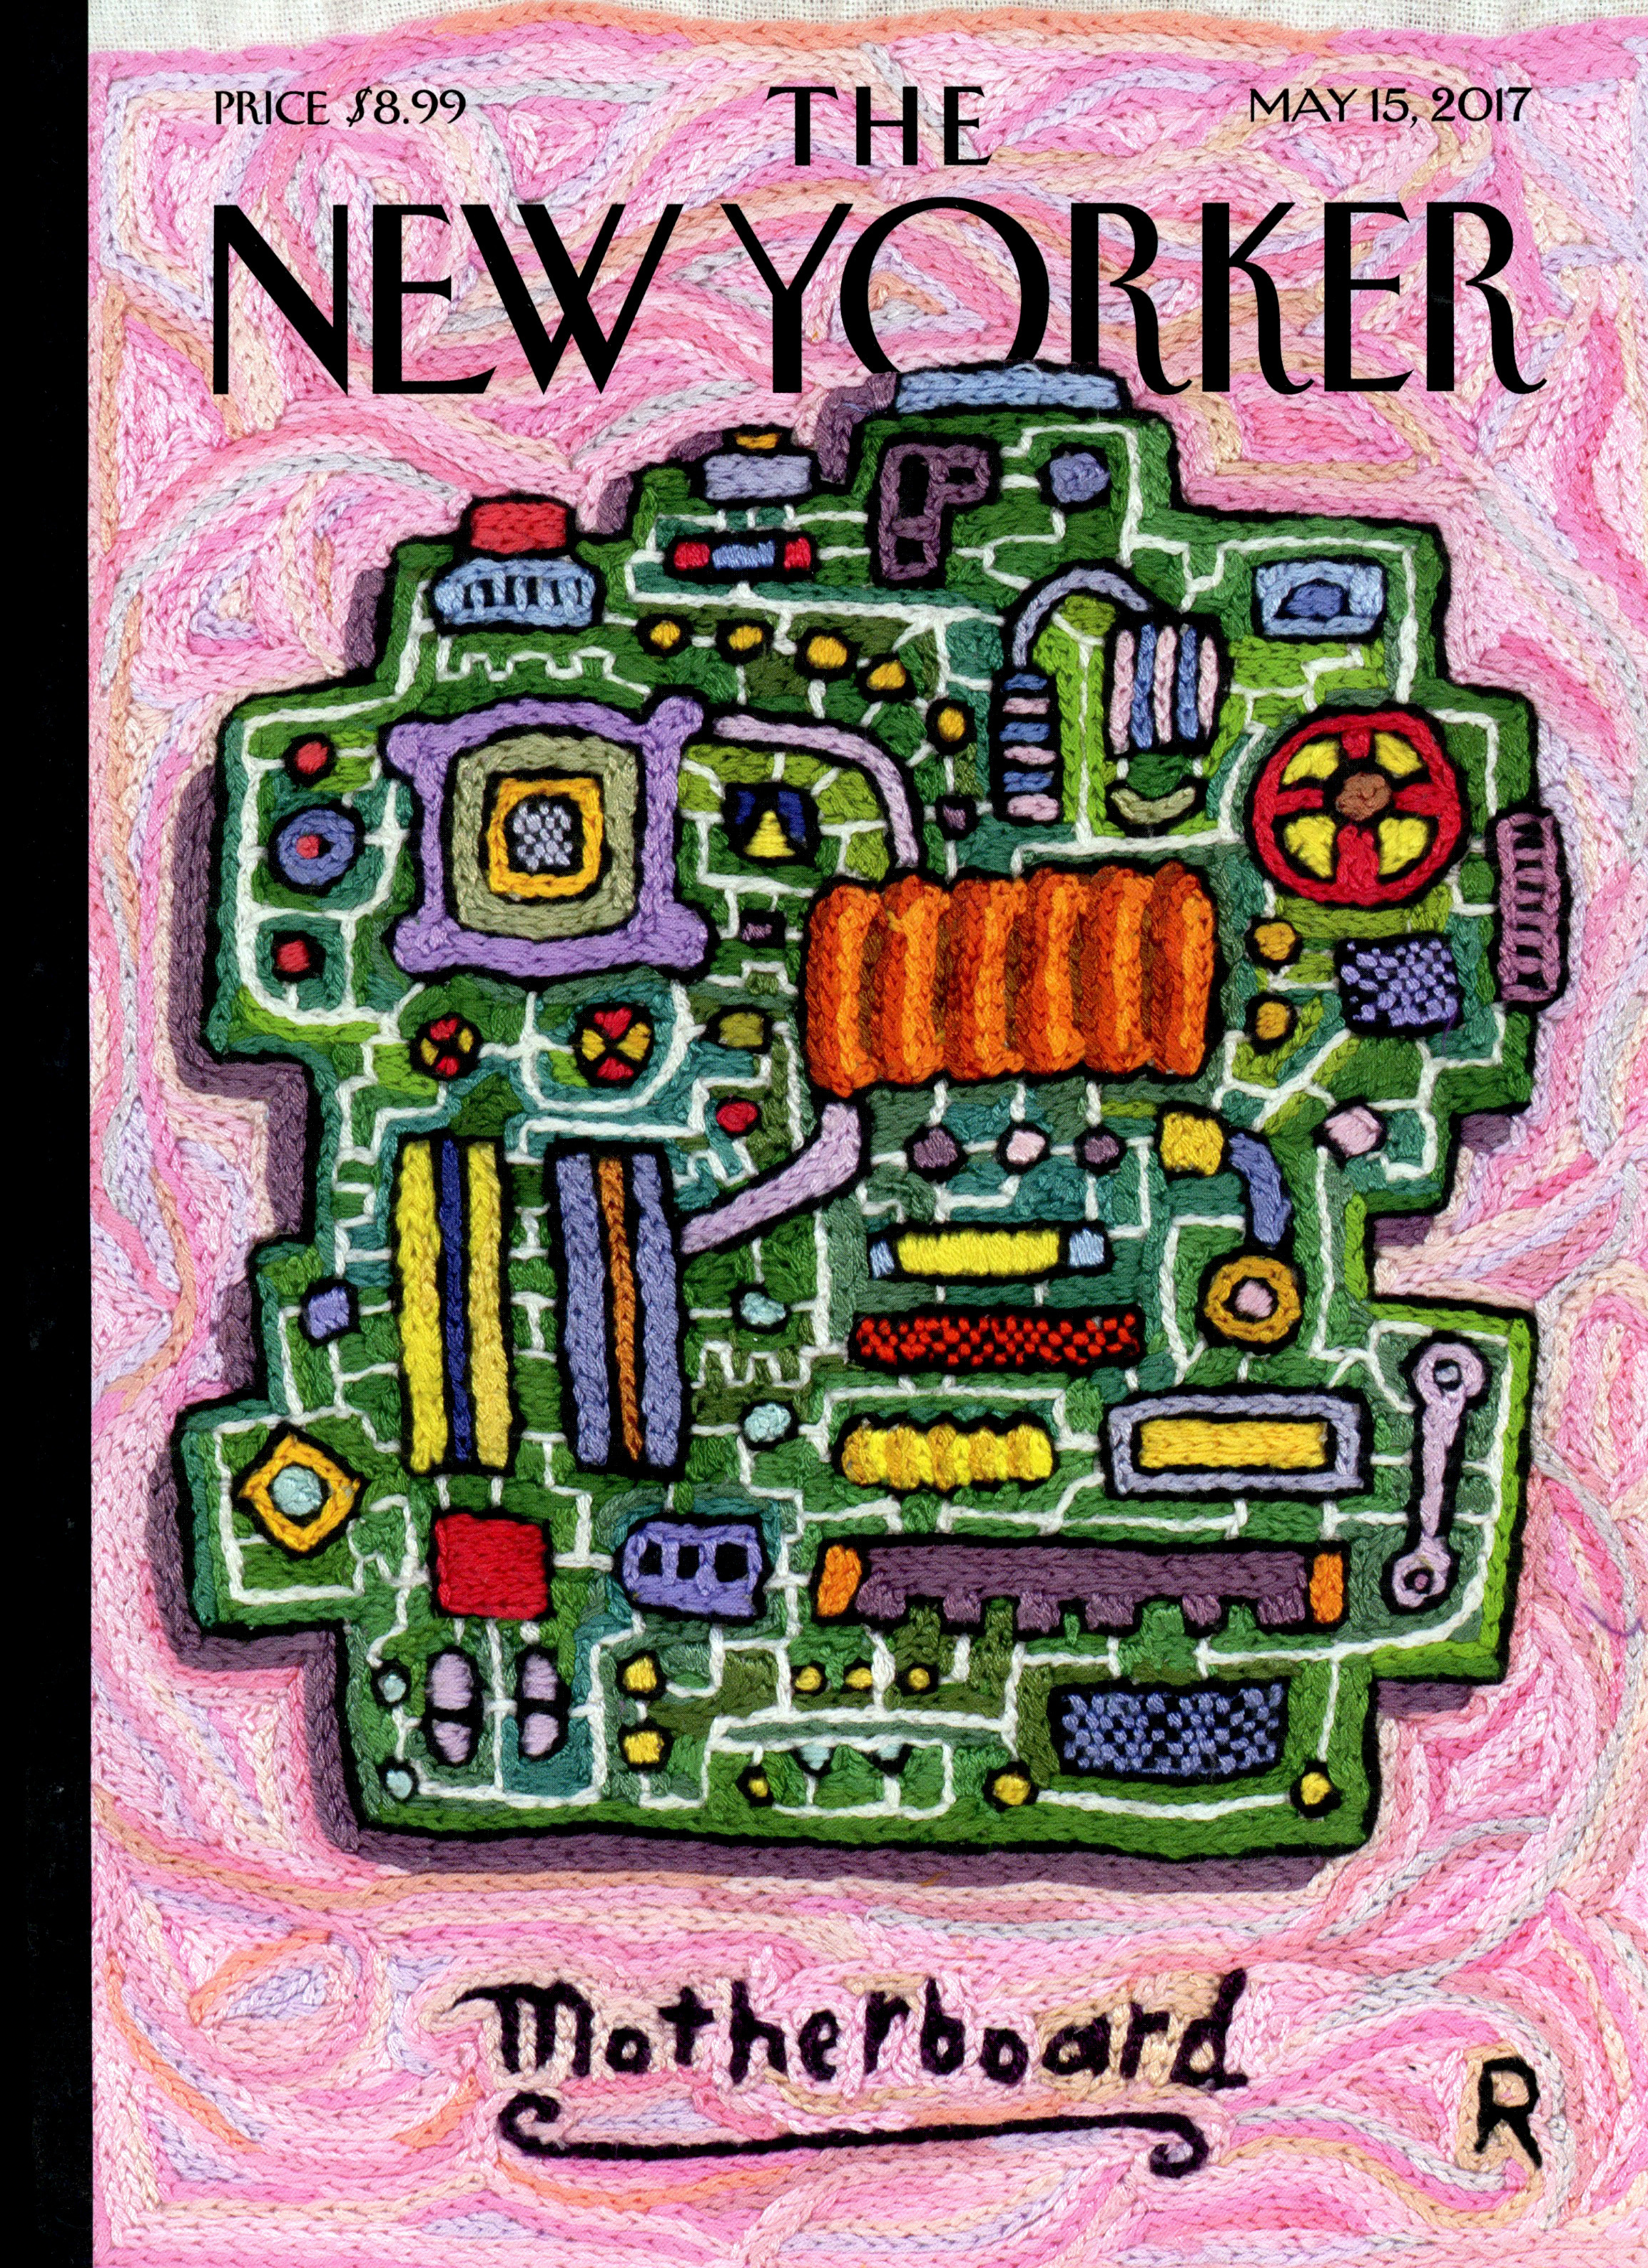 magazine cover form the New Yorker titled Motherboard